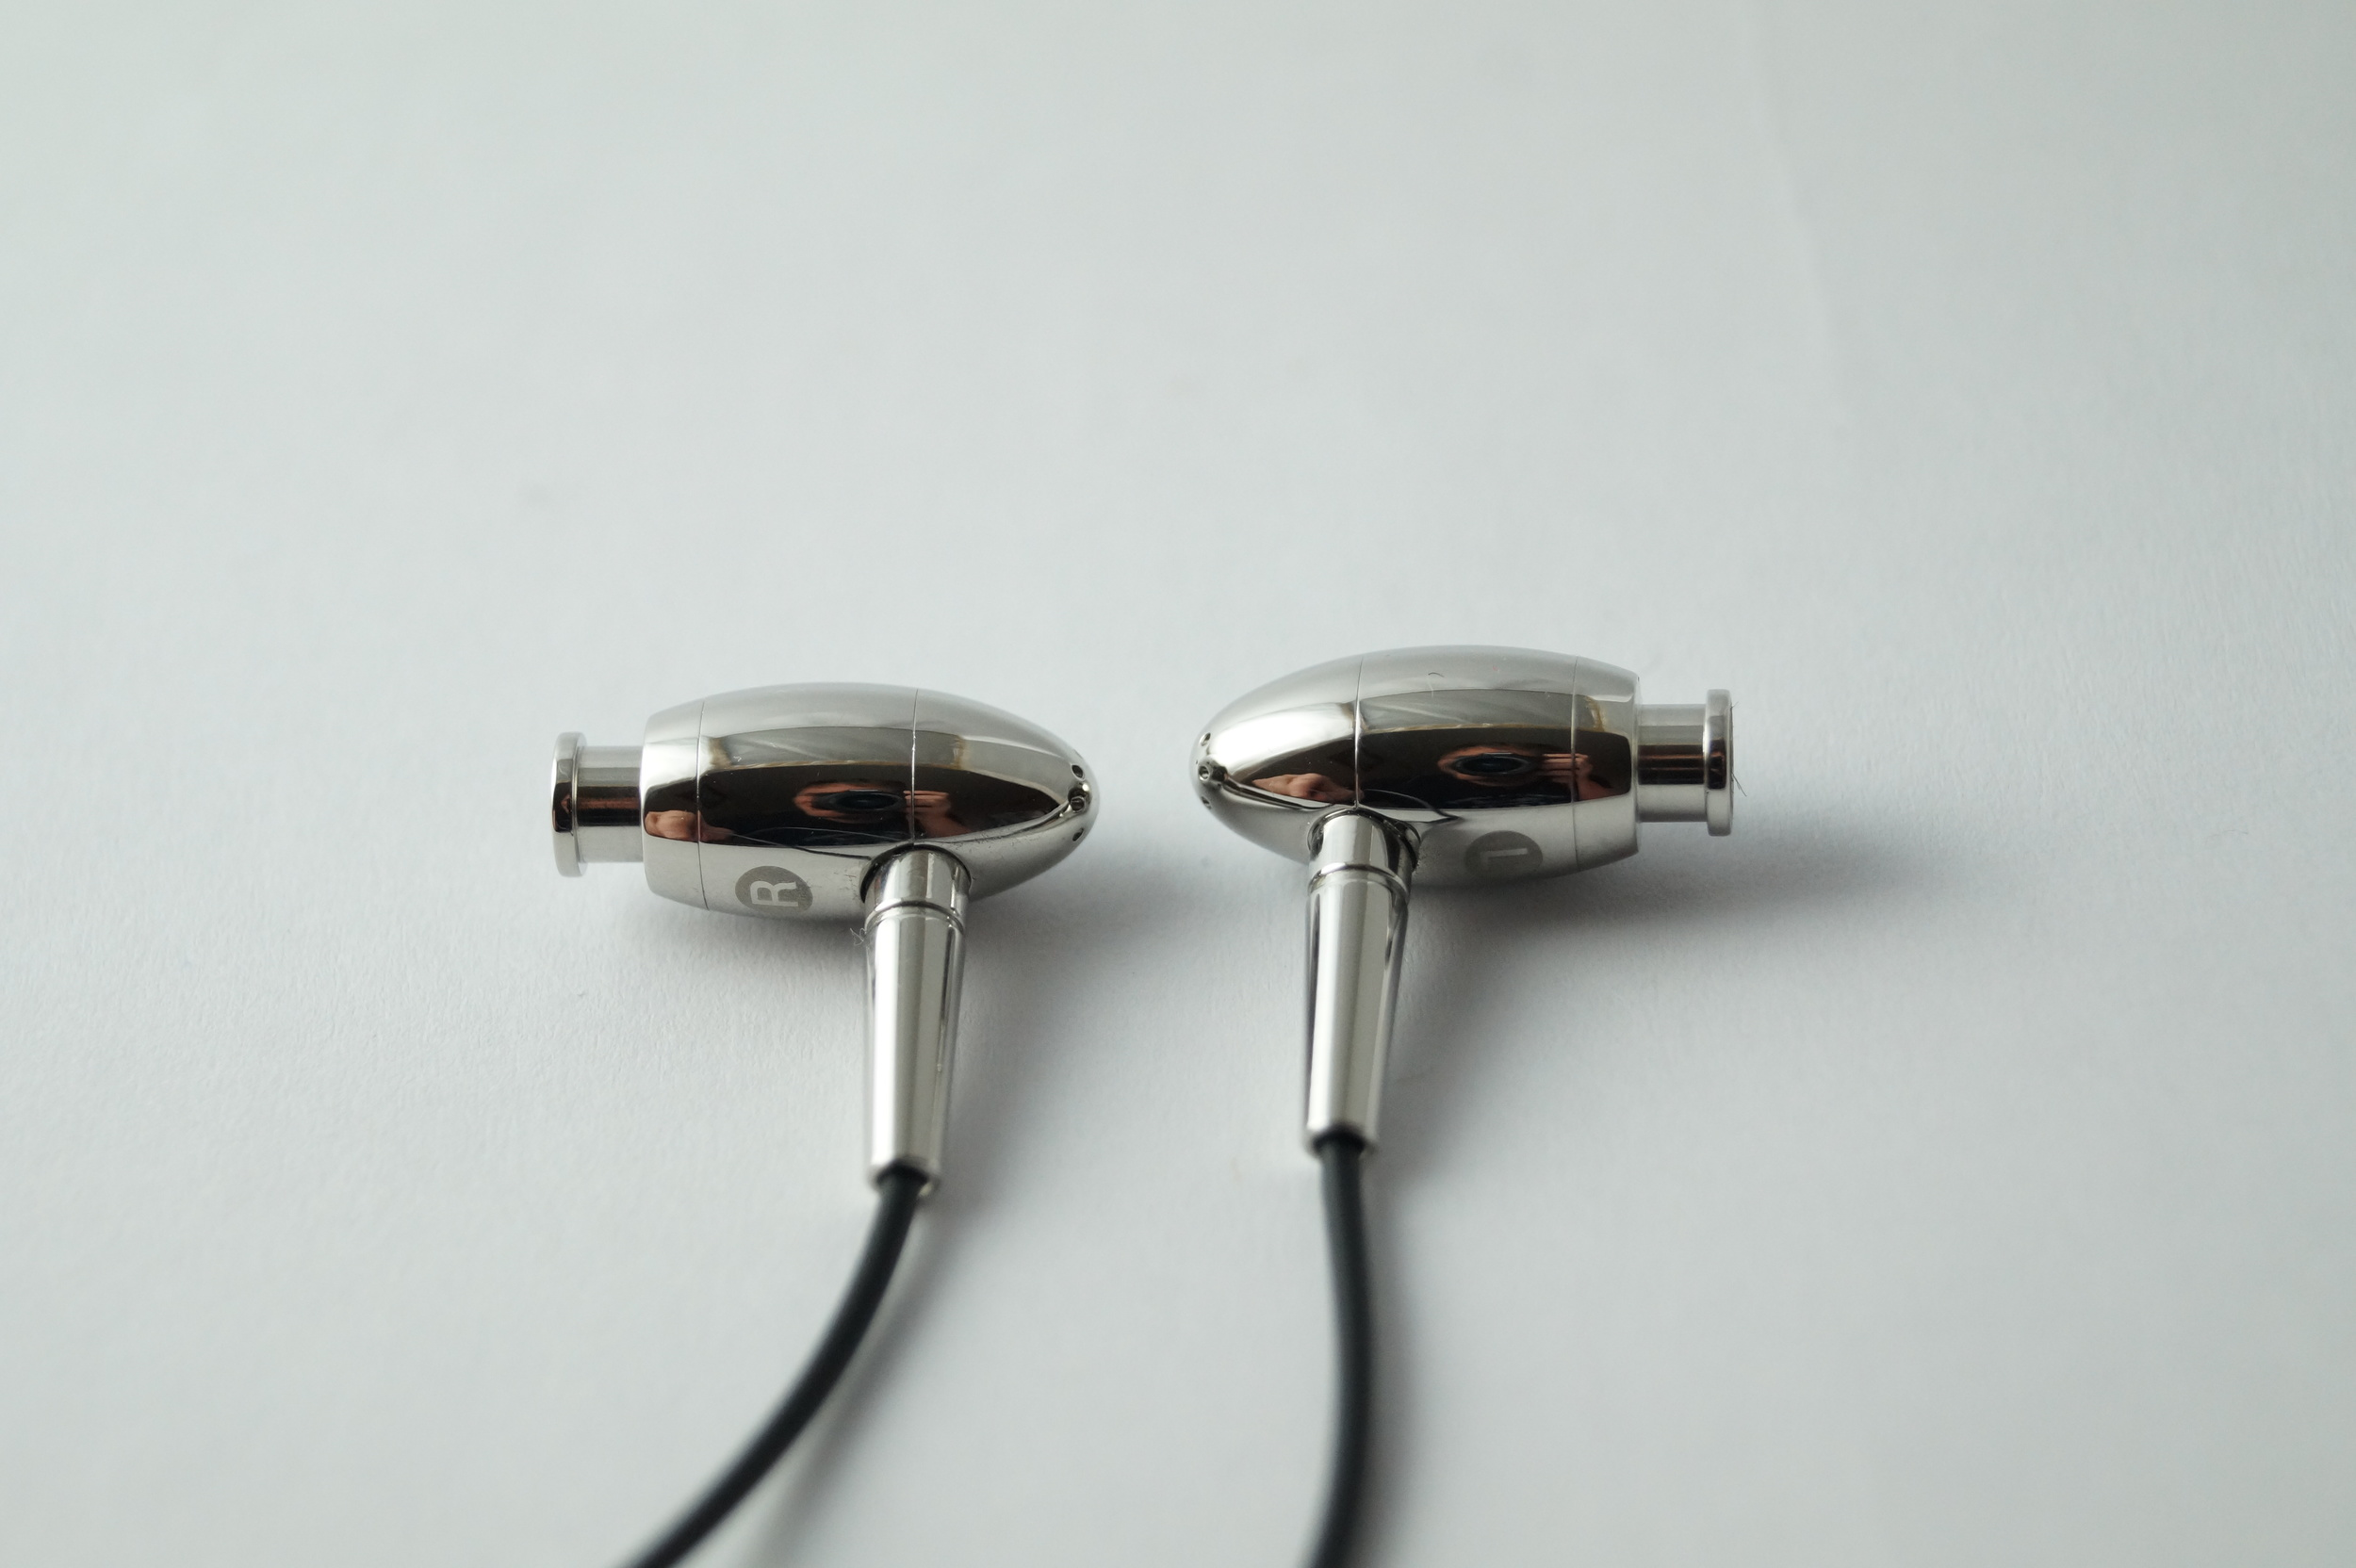 They might be expensive earphones but the FI-BA-SS sure make up for that with stunning good looks.